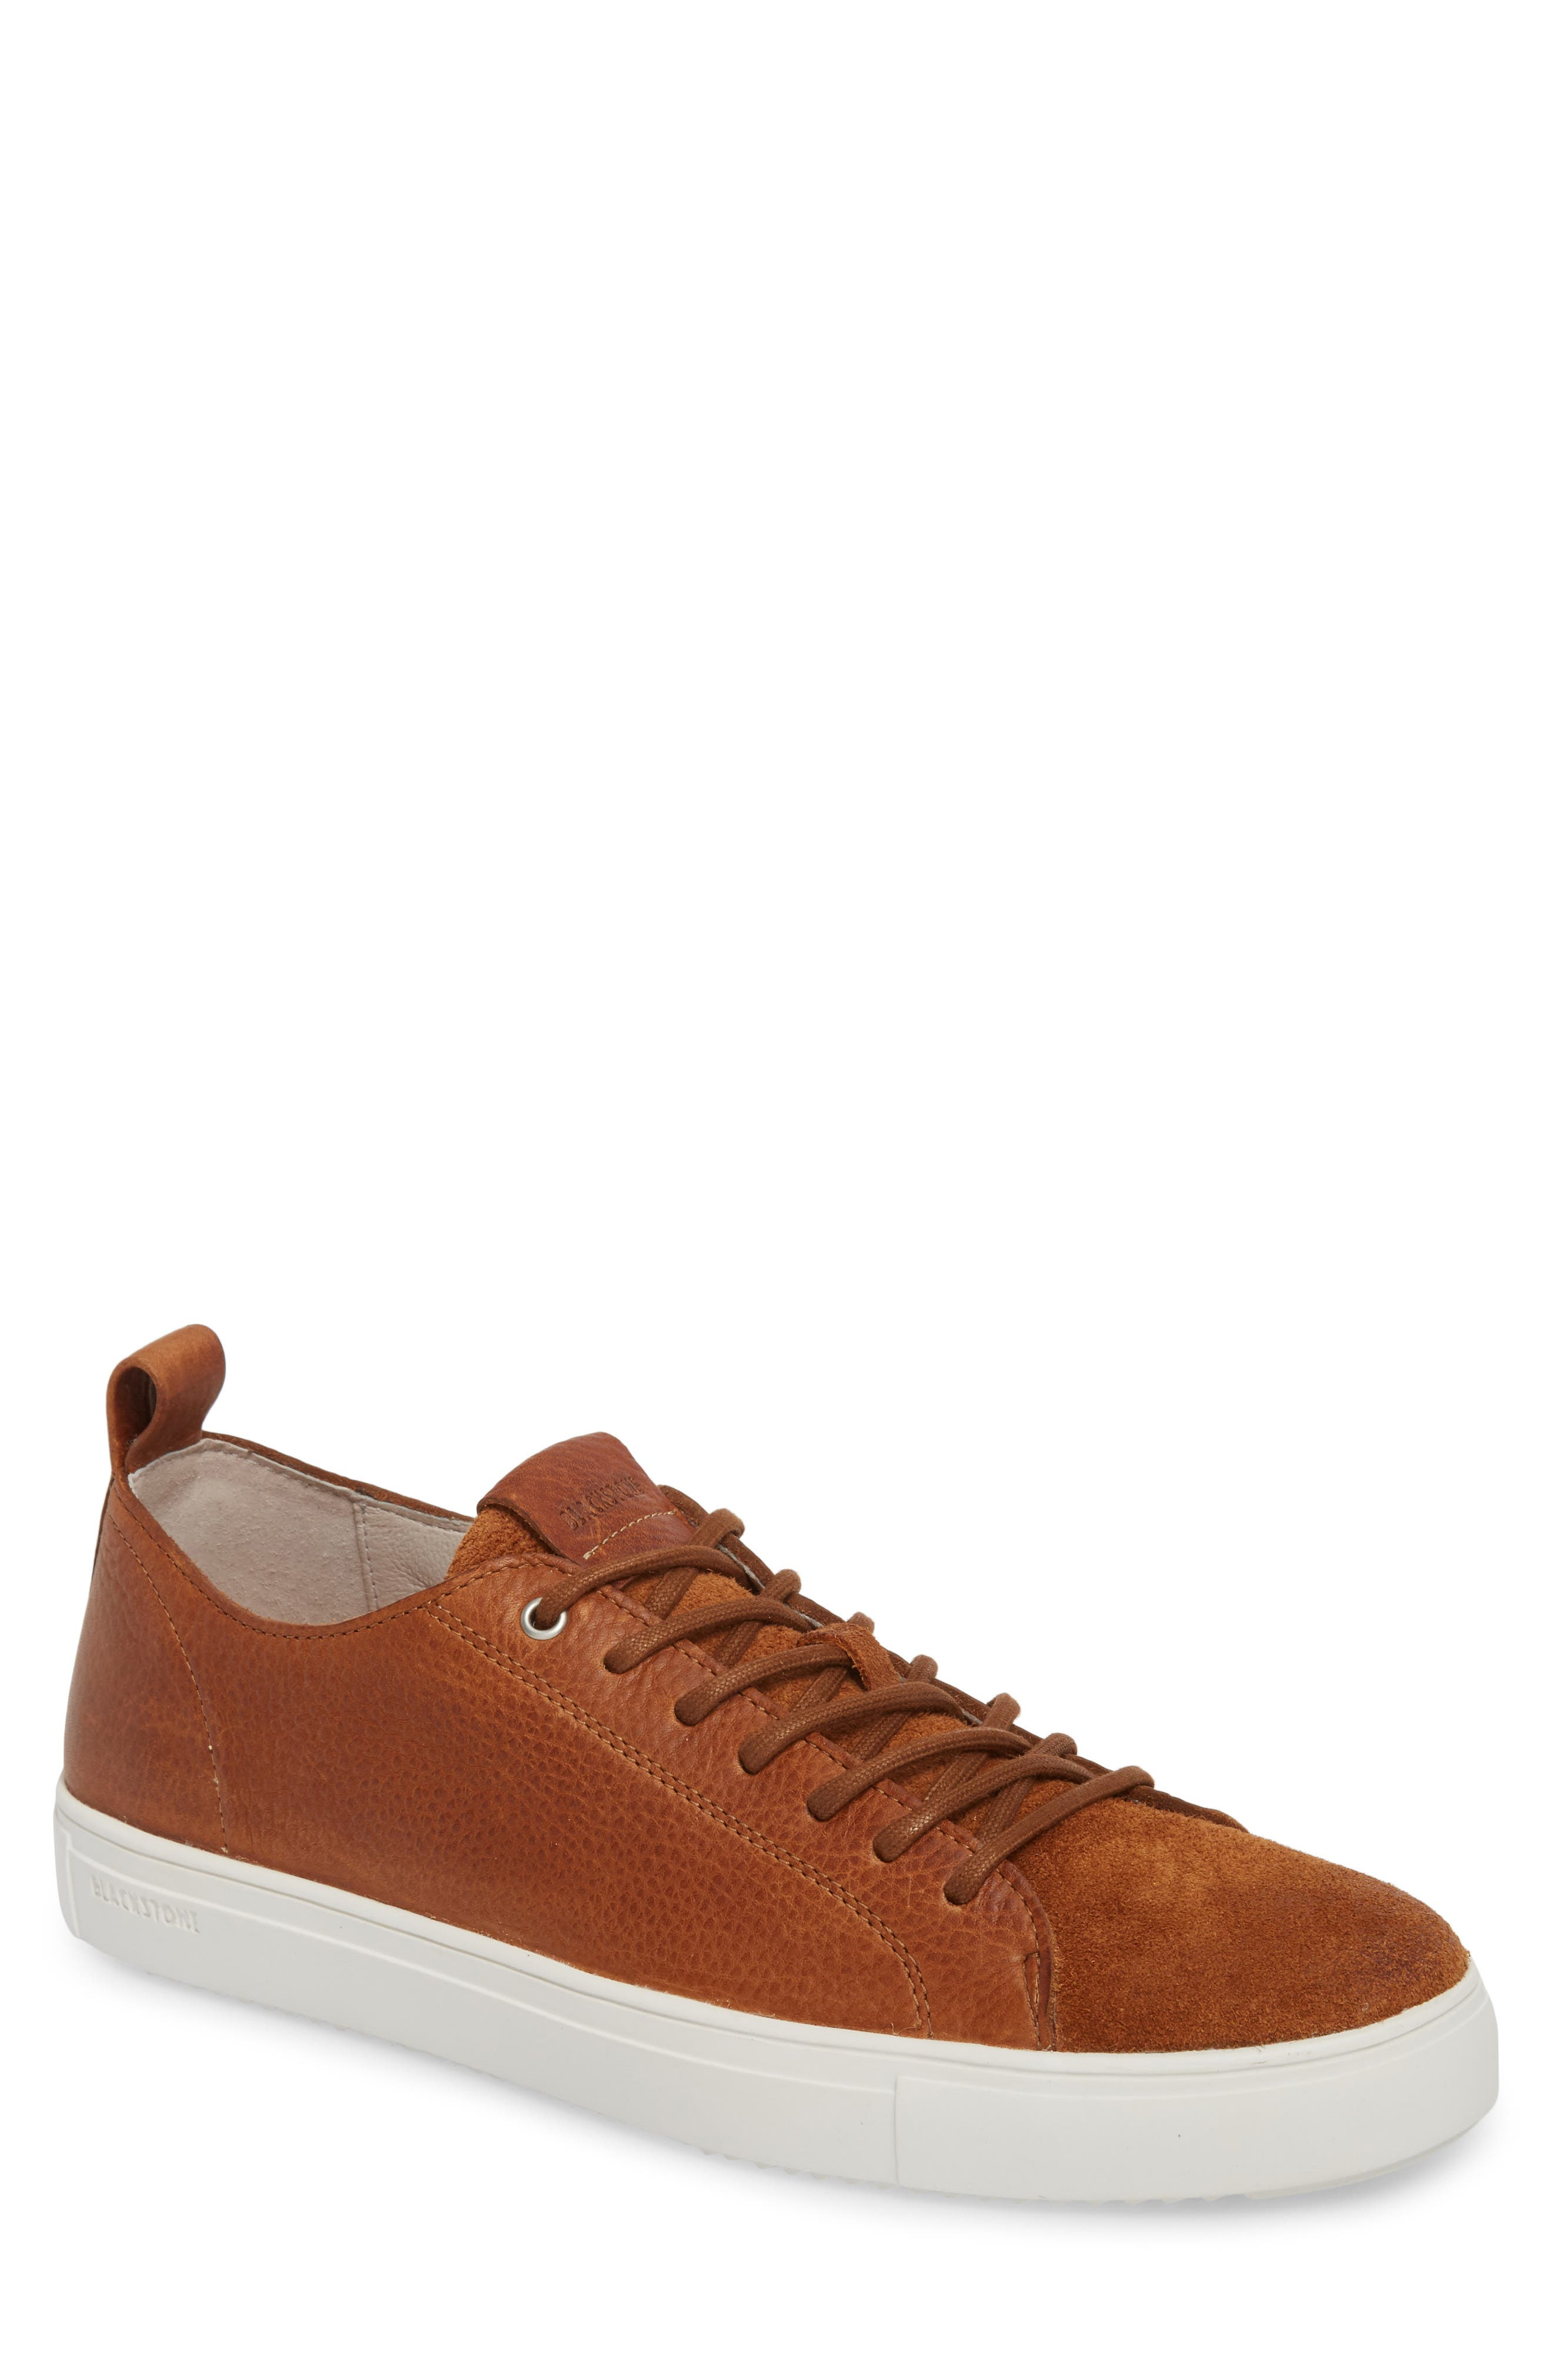 Image of Blackstone Suede & Leather Low Top Sneaker